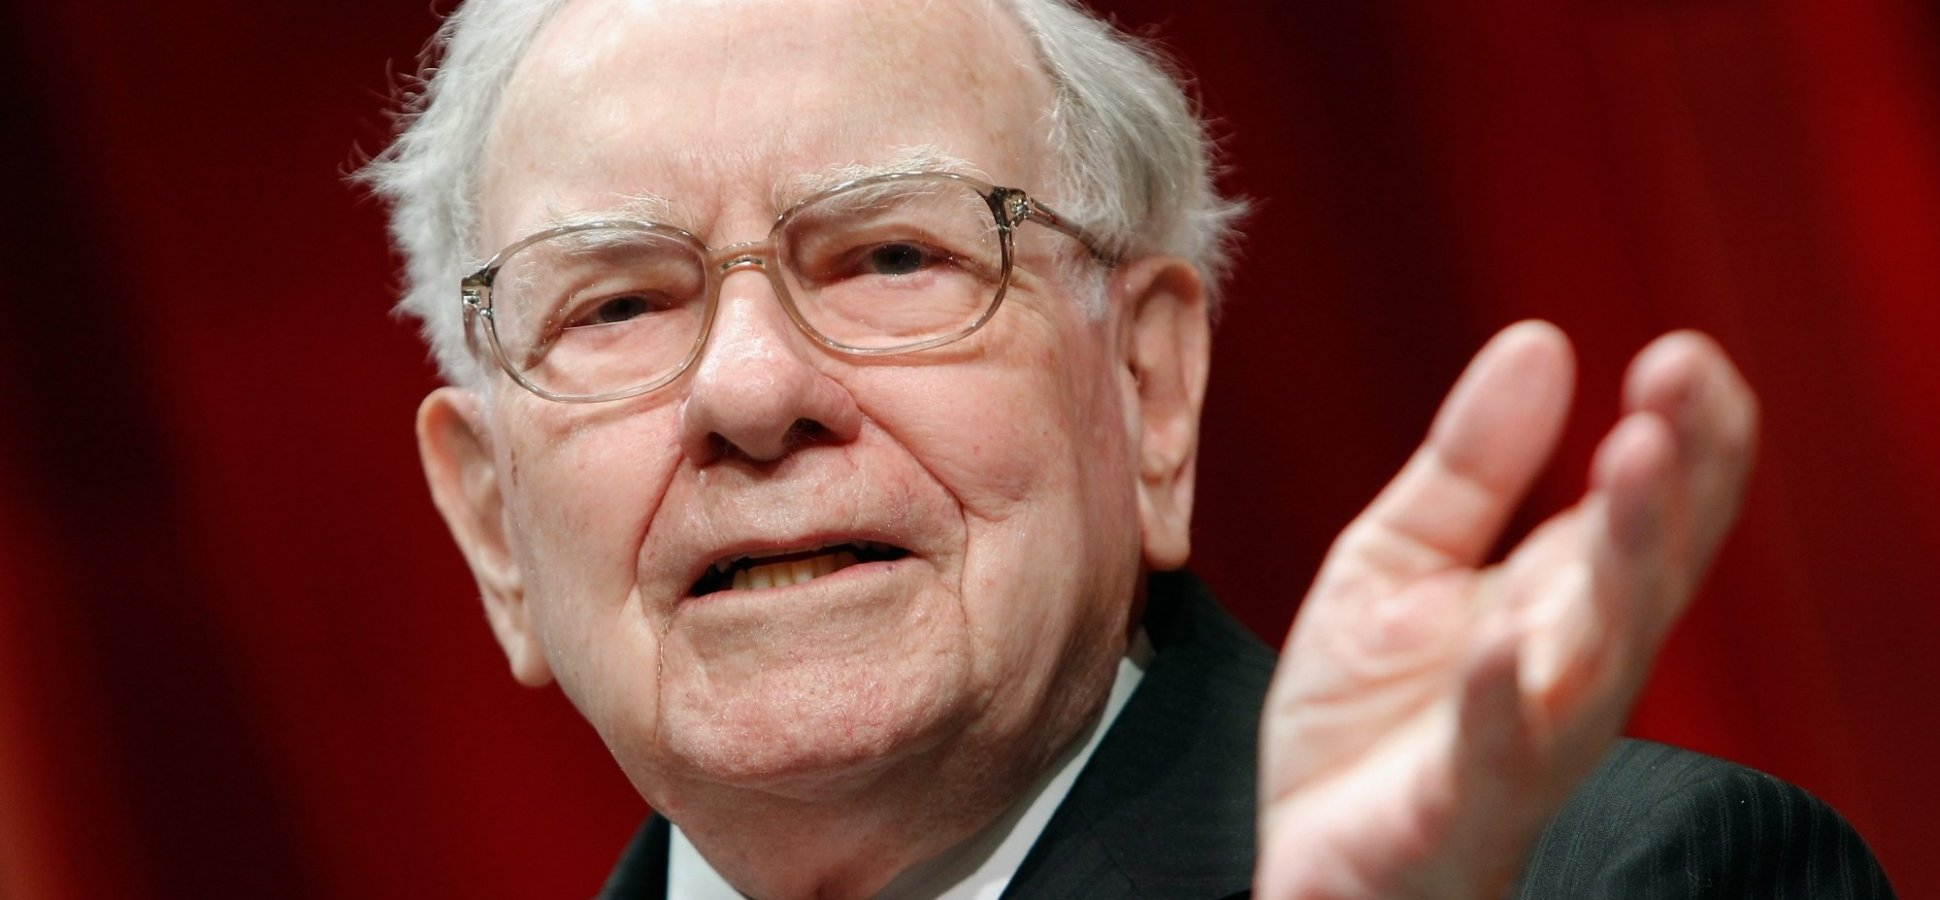 In 1 Powerful Sentence Warren Buffett Just Shared the Key to Leading With Empathy